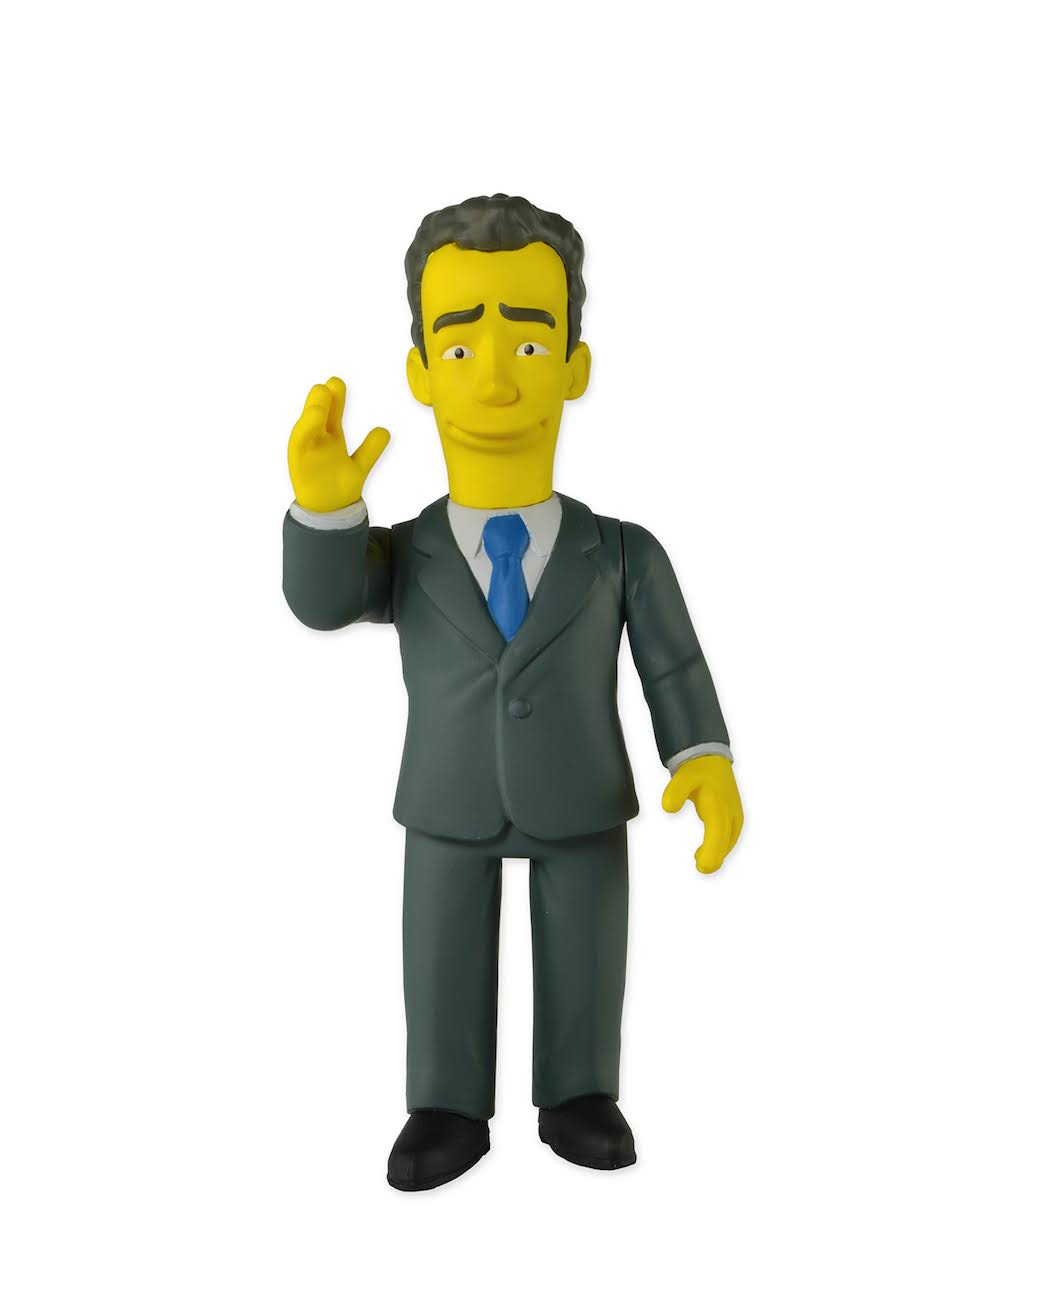 The Simpsons 25th Anniversary Tom Hanks Figure - 5""